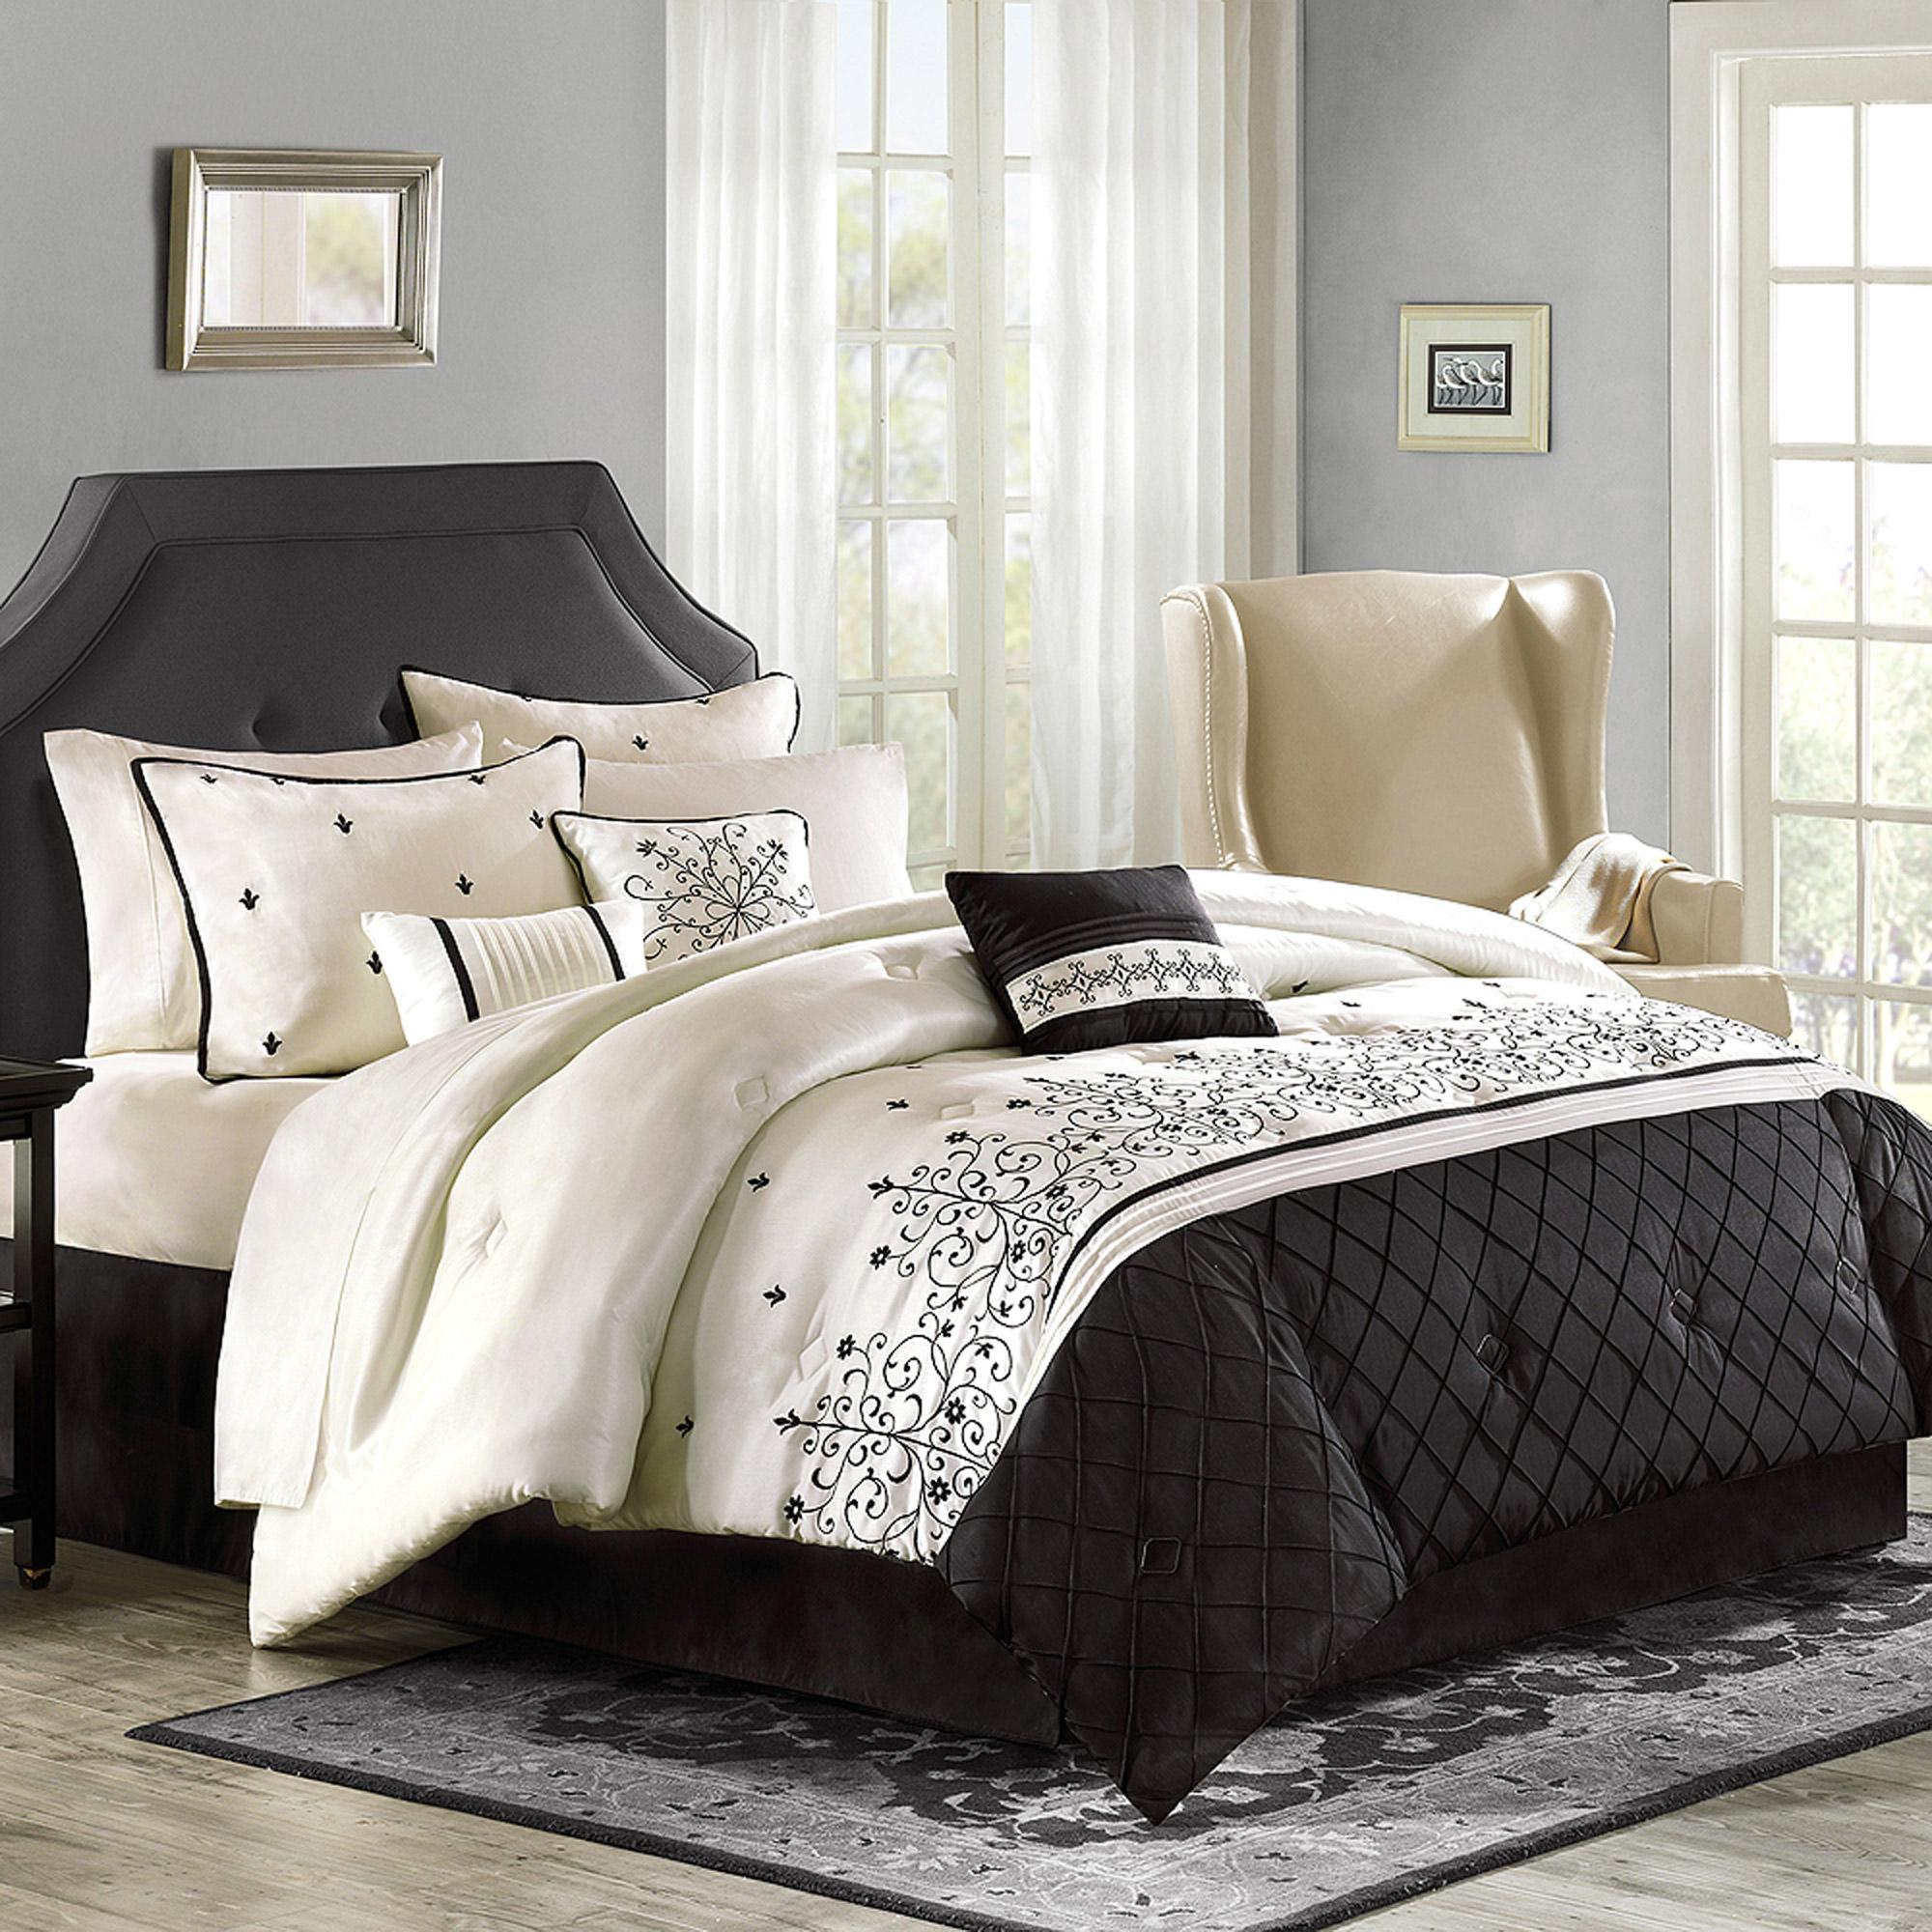 pacific coast comforter macys down comforter feather comforter set